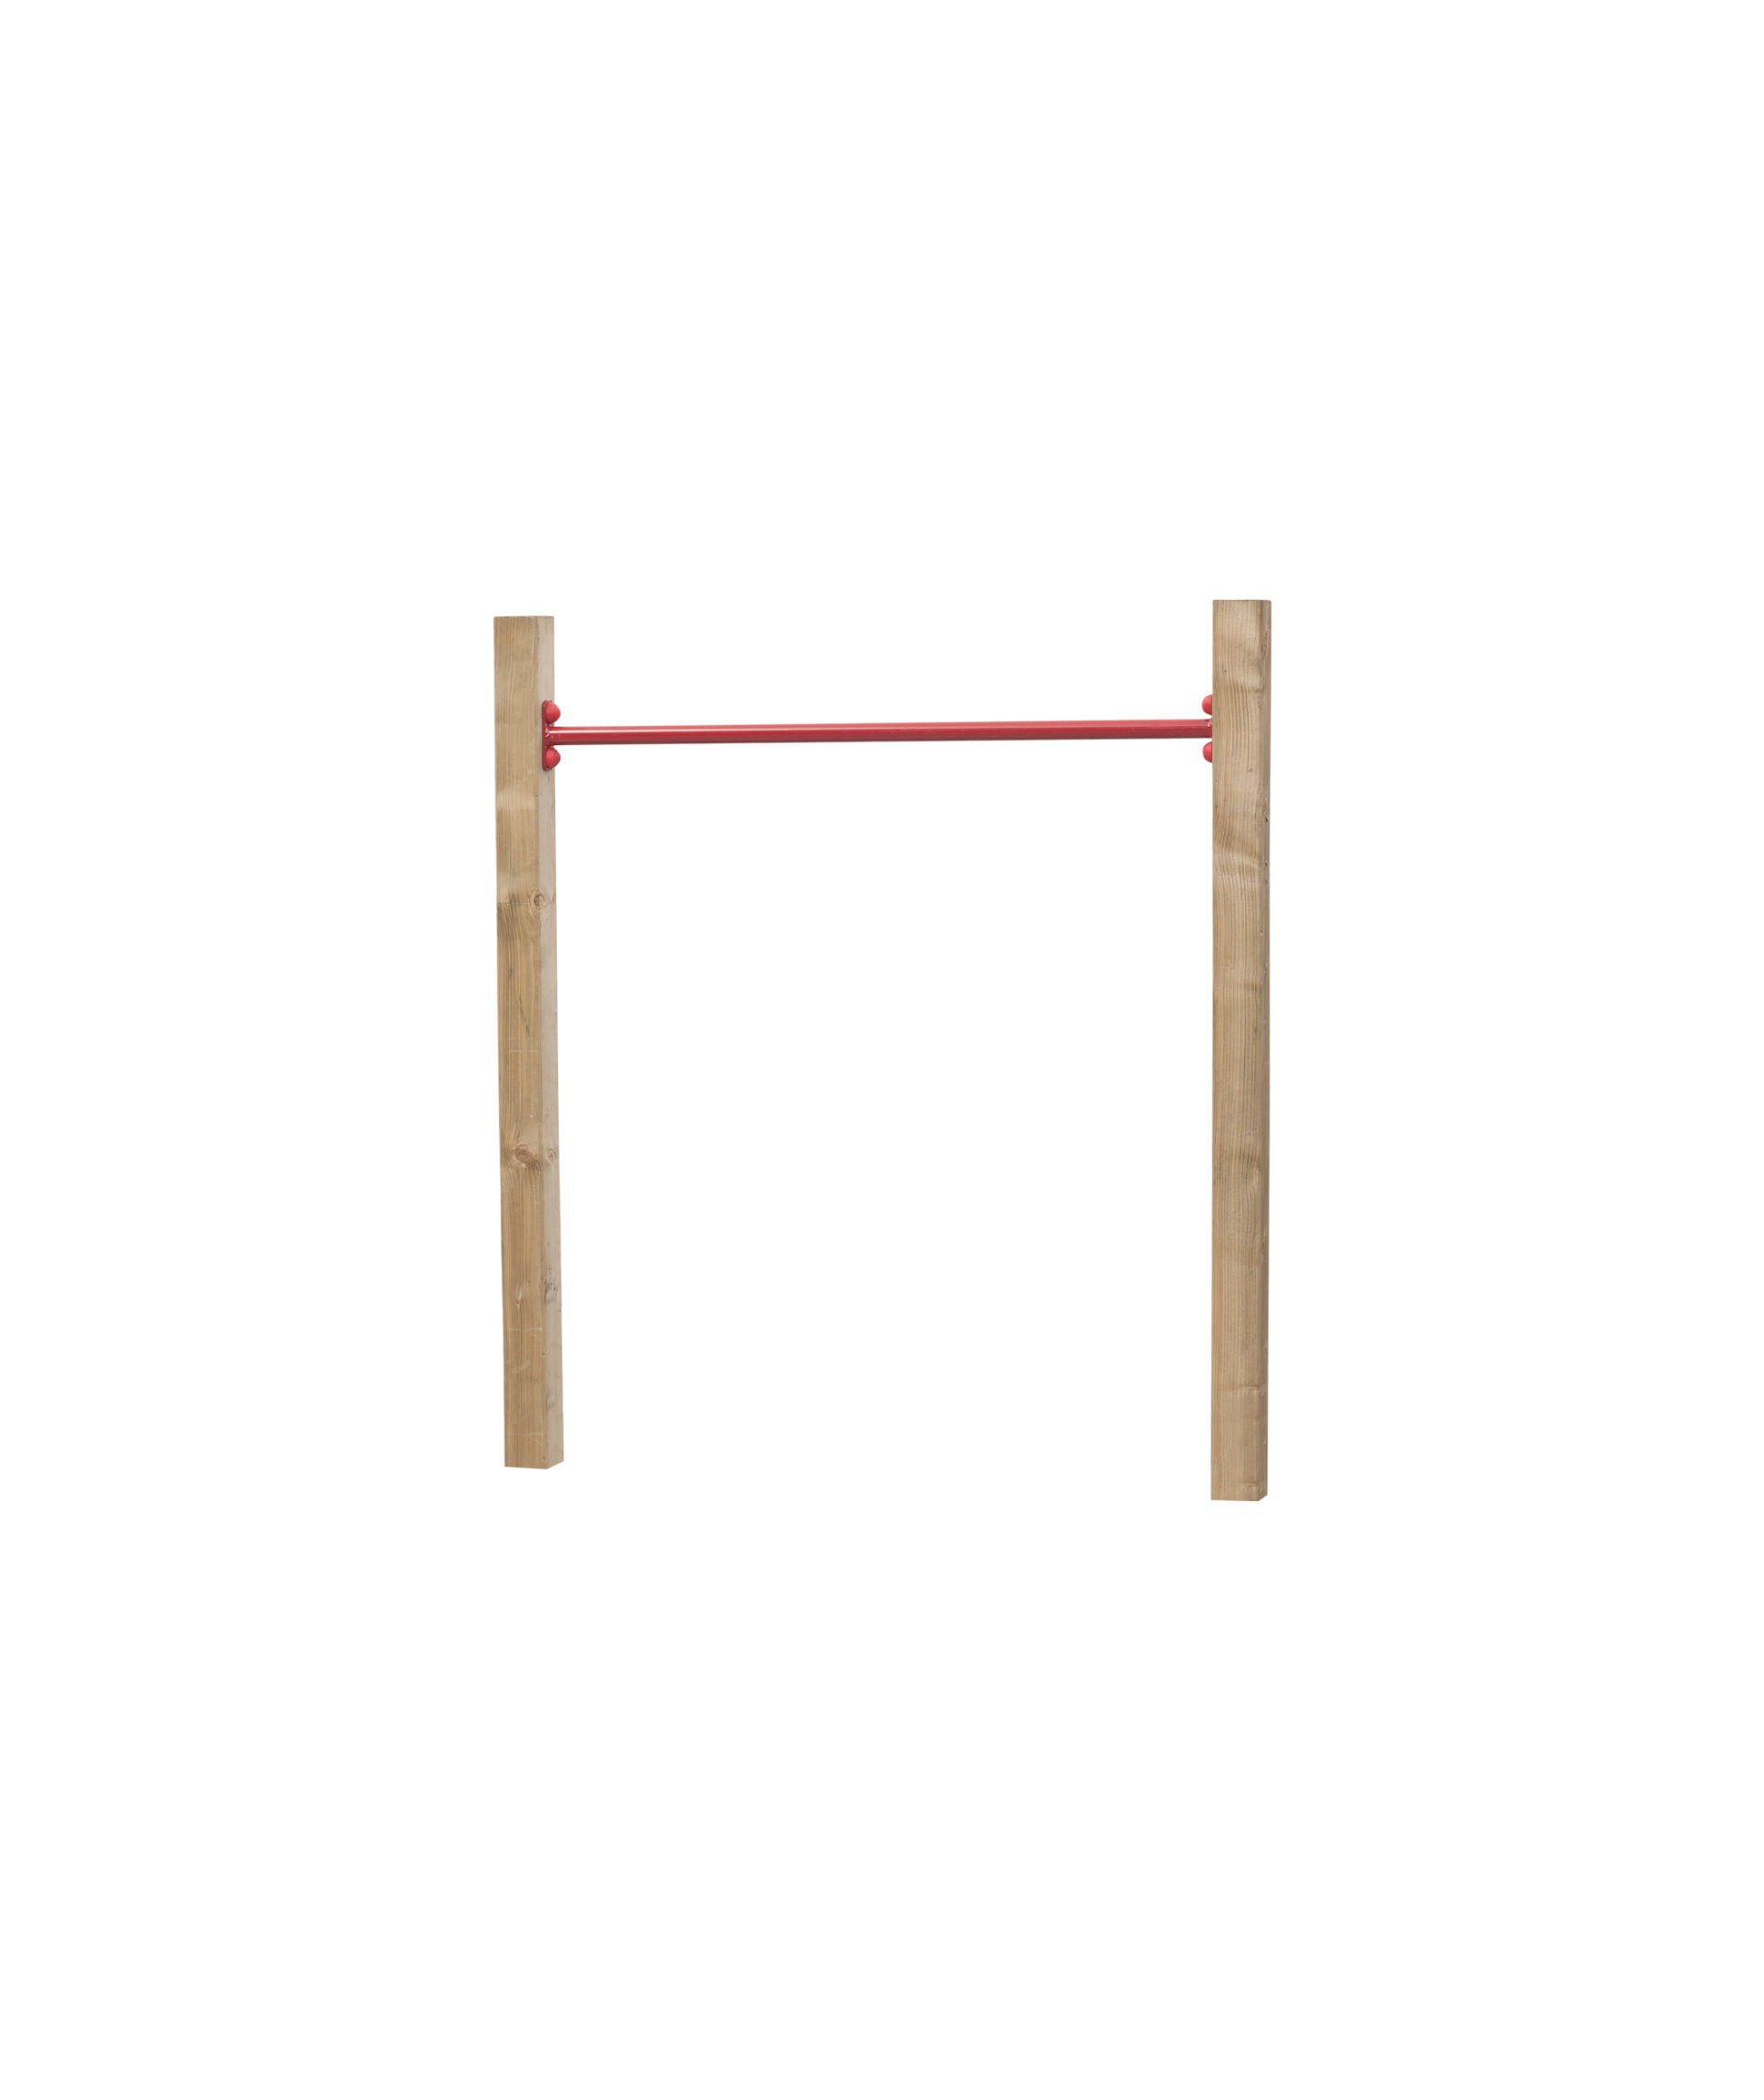 Tumble bar single